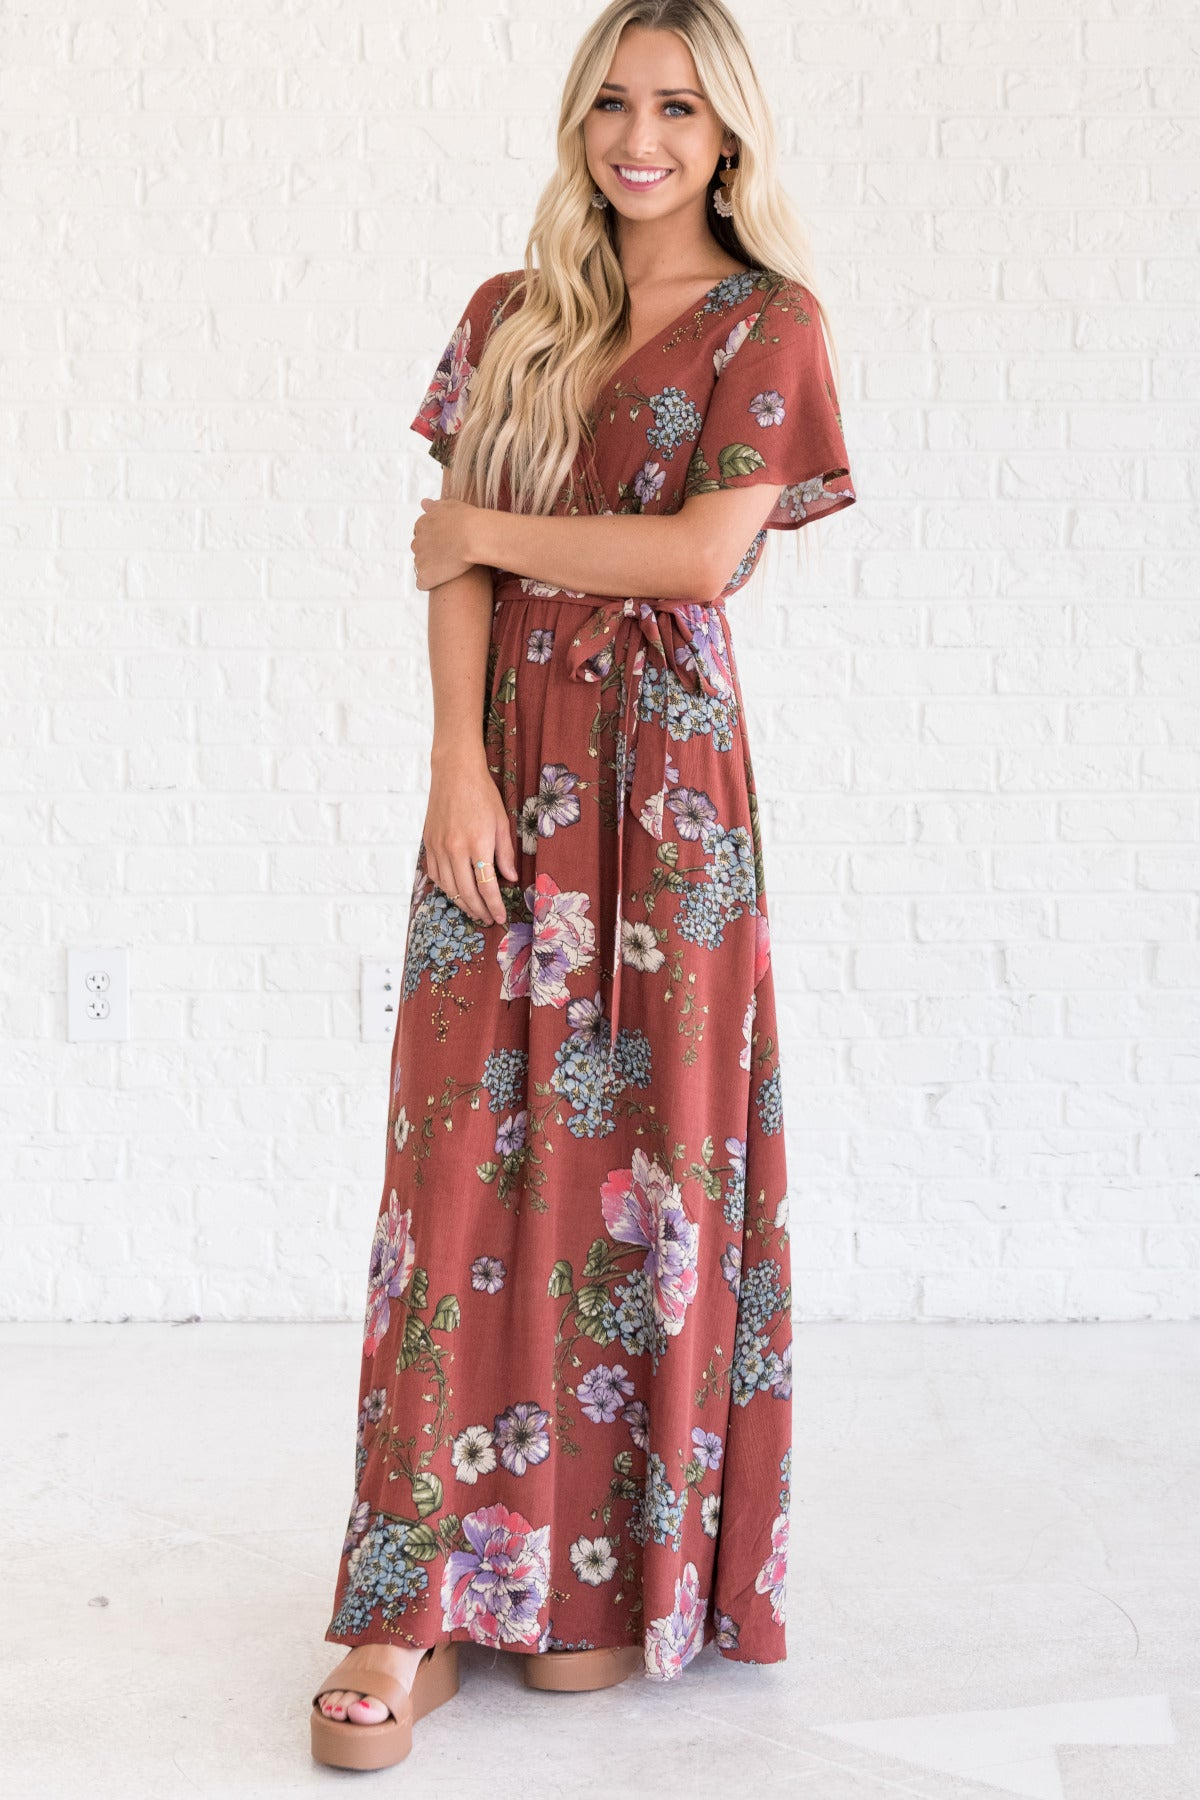 6403b720cae7 C'est La Vie Brick Red Floral Maxi Dress | Special Occasion Dresses